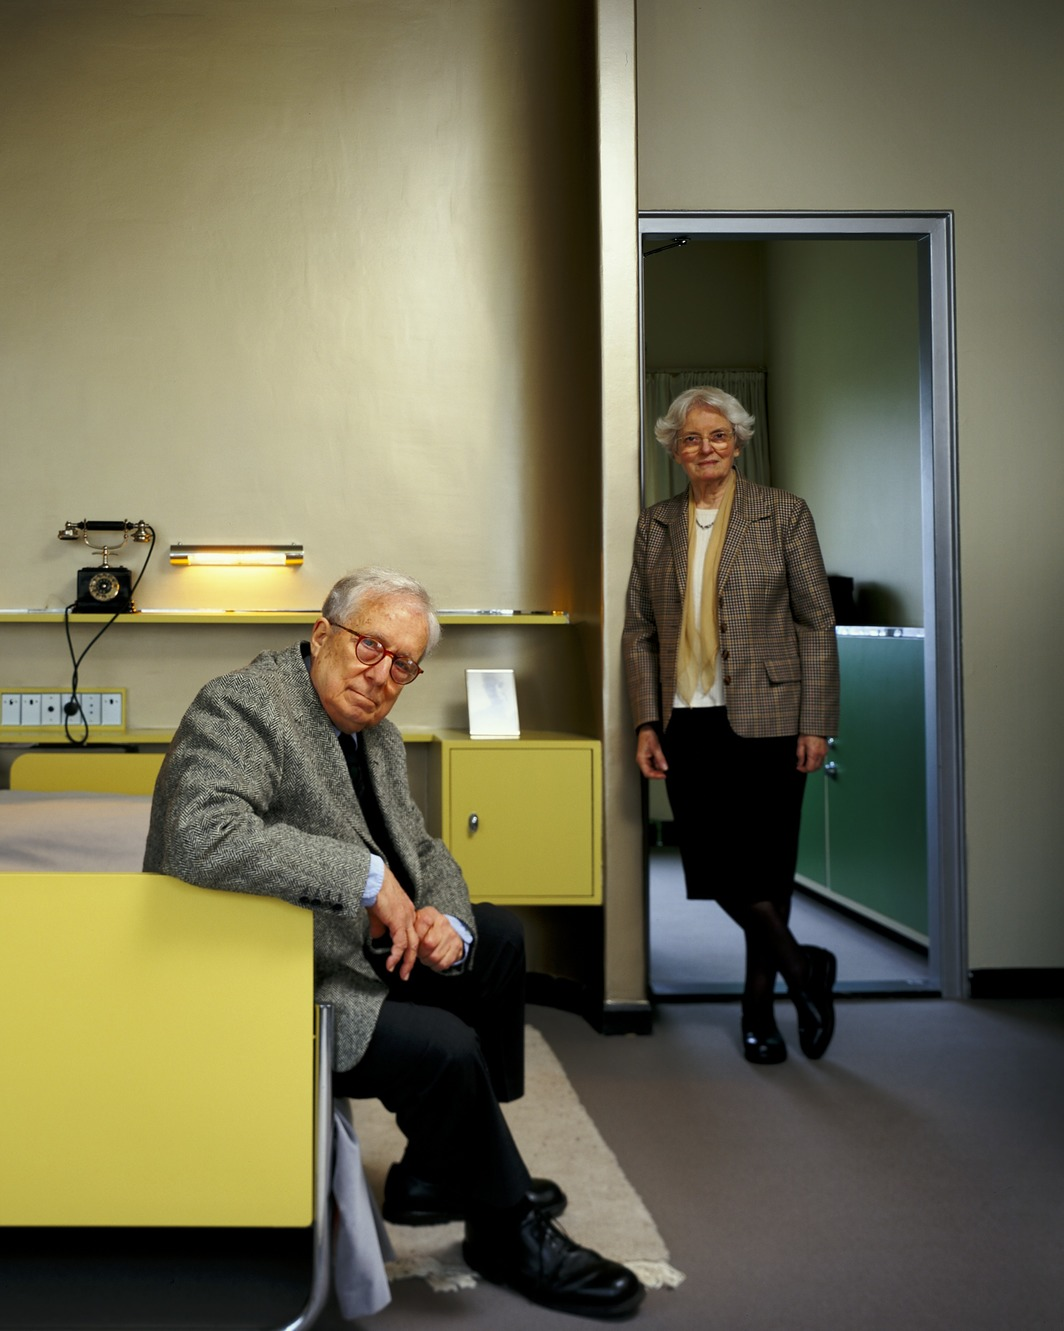 Robert Venturi and Denise Scott Brown. Photo: Frank Hanswijk.